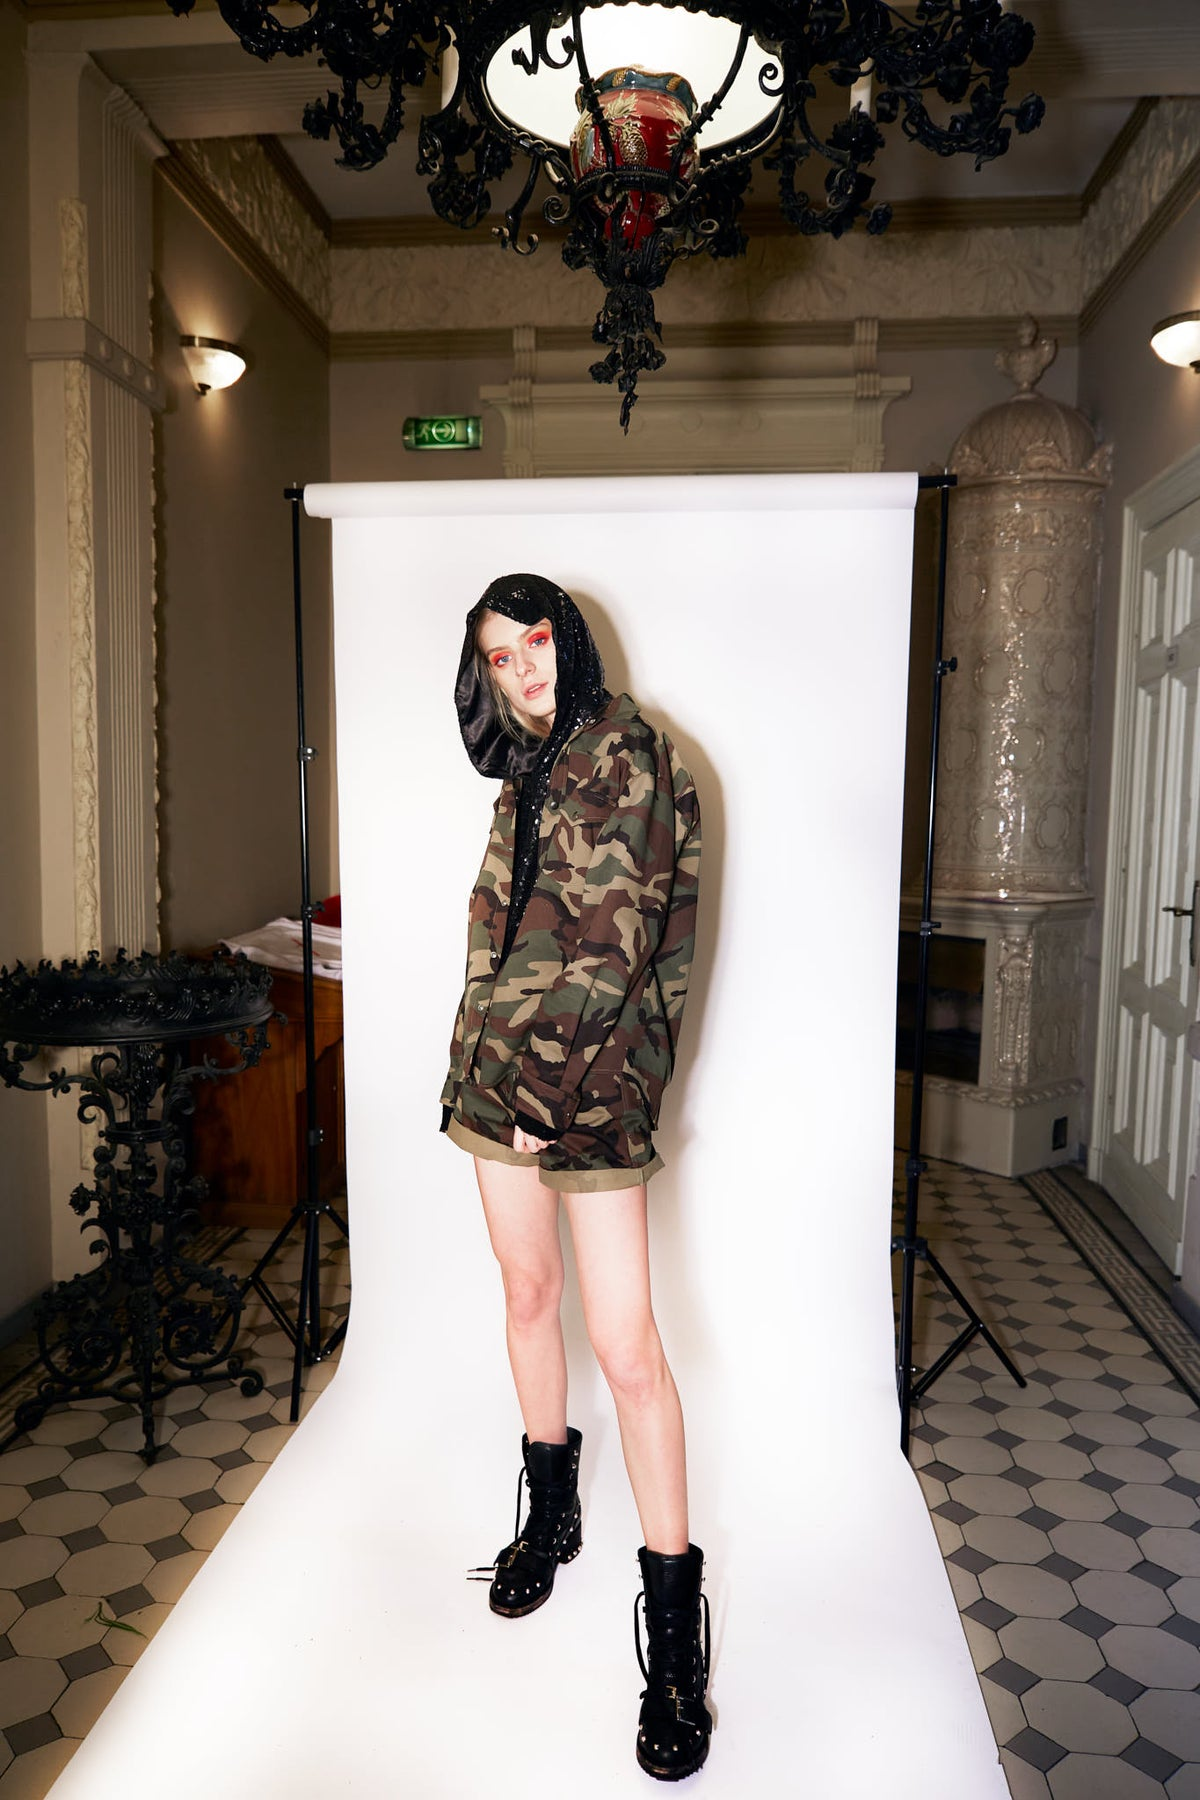 Camo-Series-Oversize-Camouflage-Print-Jacket-Outwear-Clothing-le-slap-lookbook.jpg